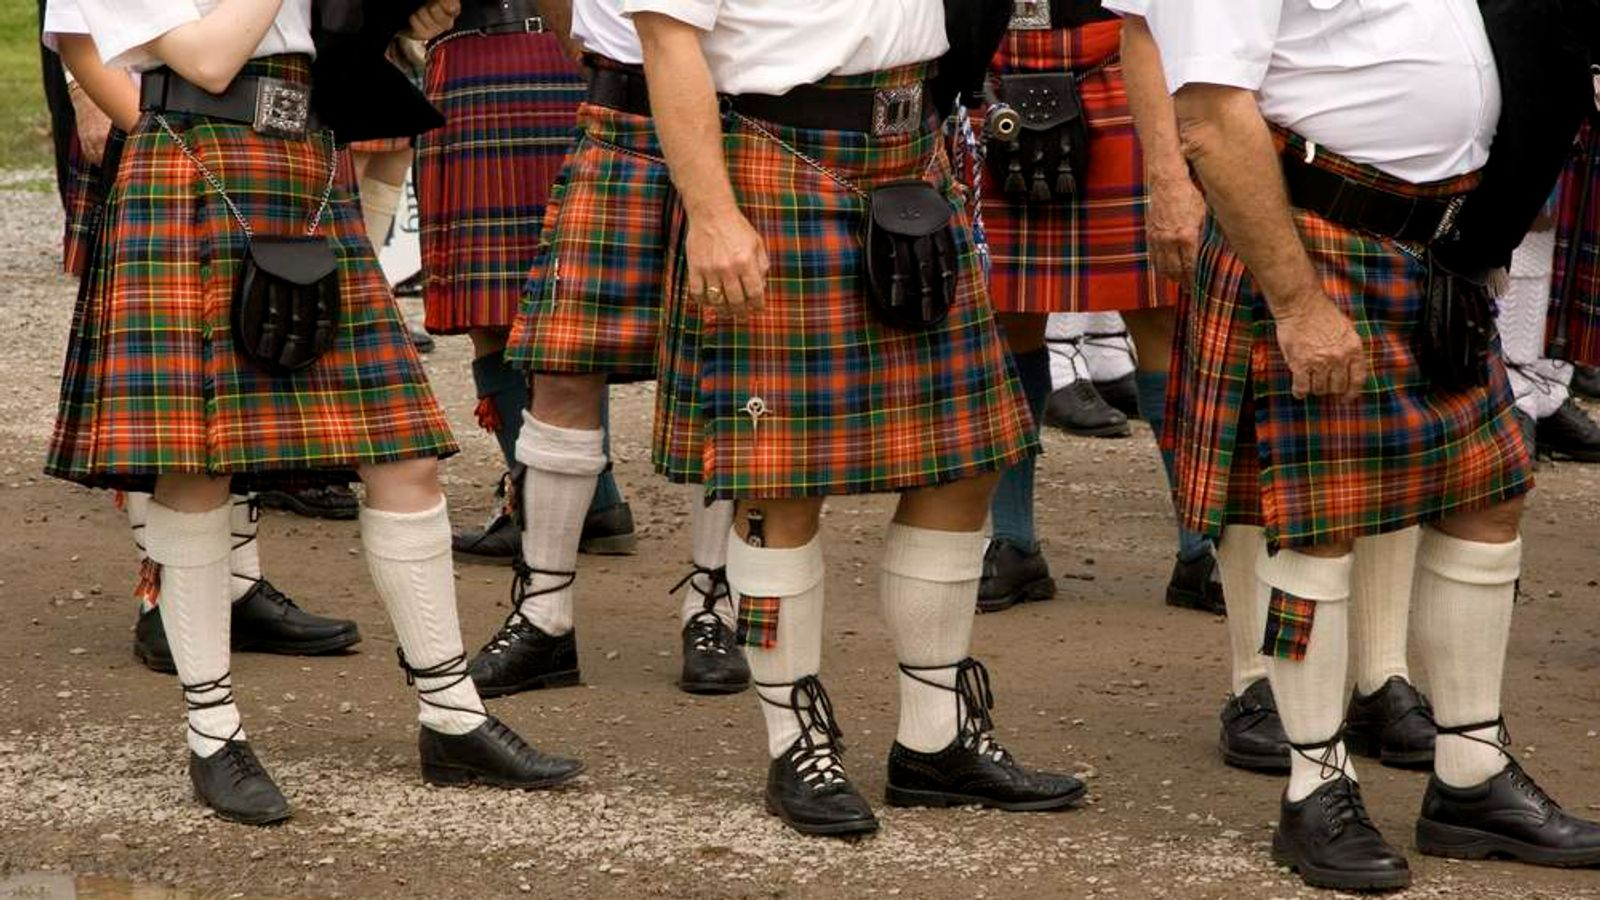 Three Scottish pipers wearing kilts